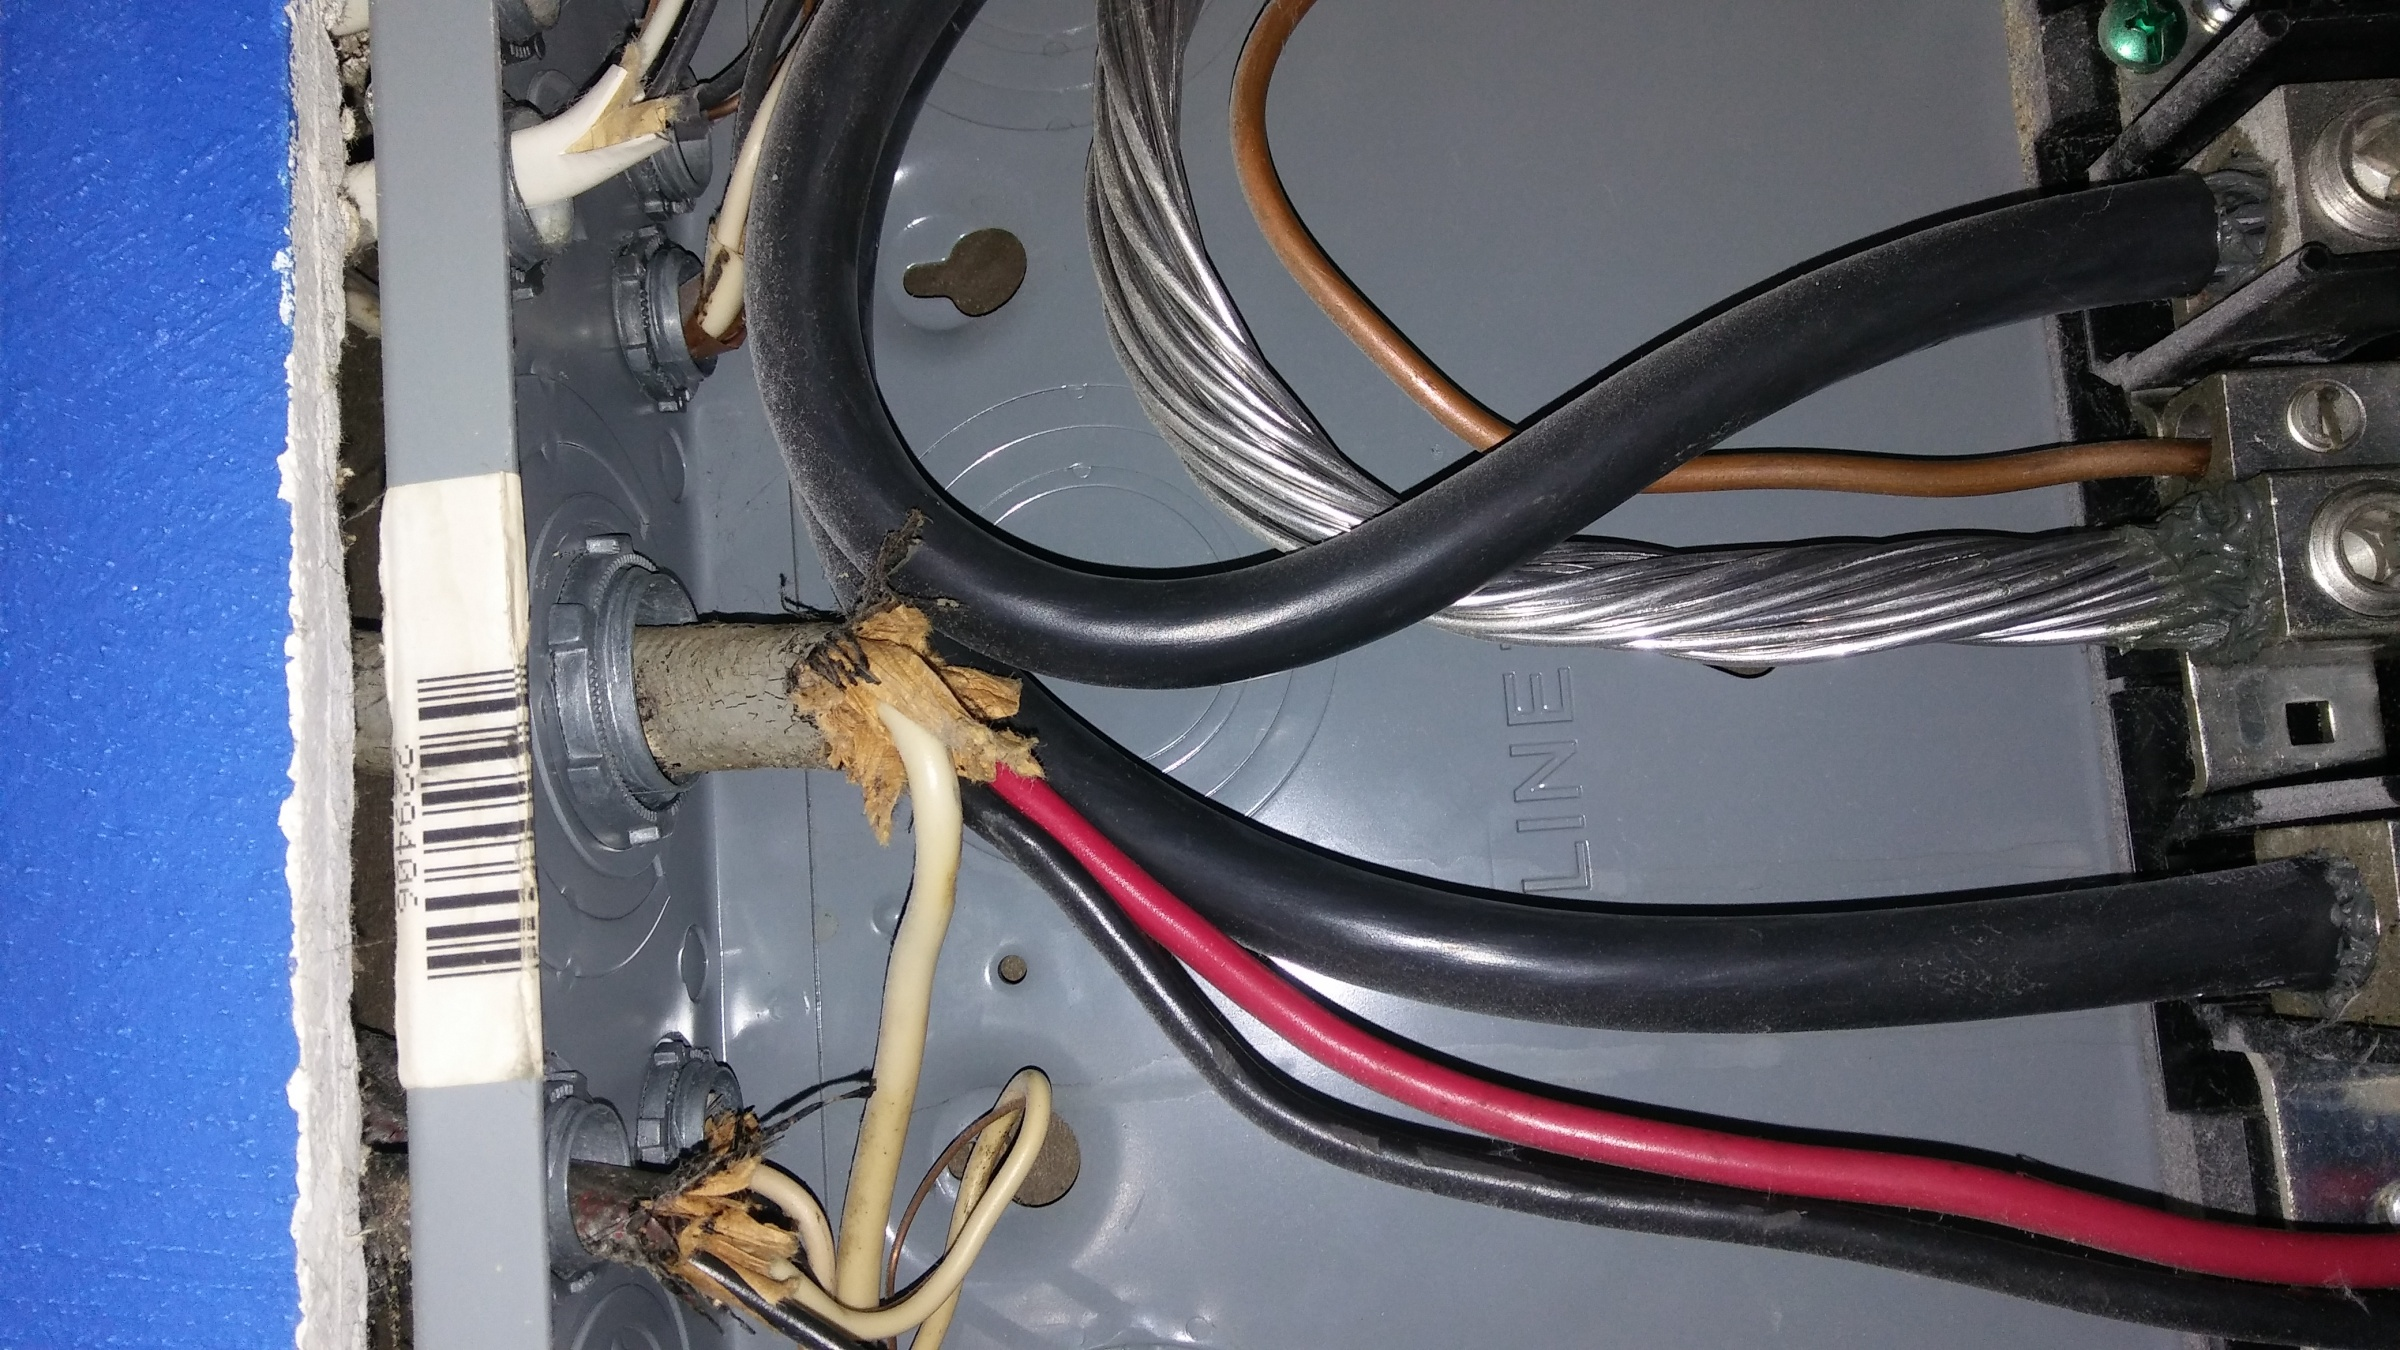 4 Wire Cooktop on 3 Wire Power Supply-20190131_225717.jpg